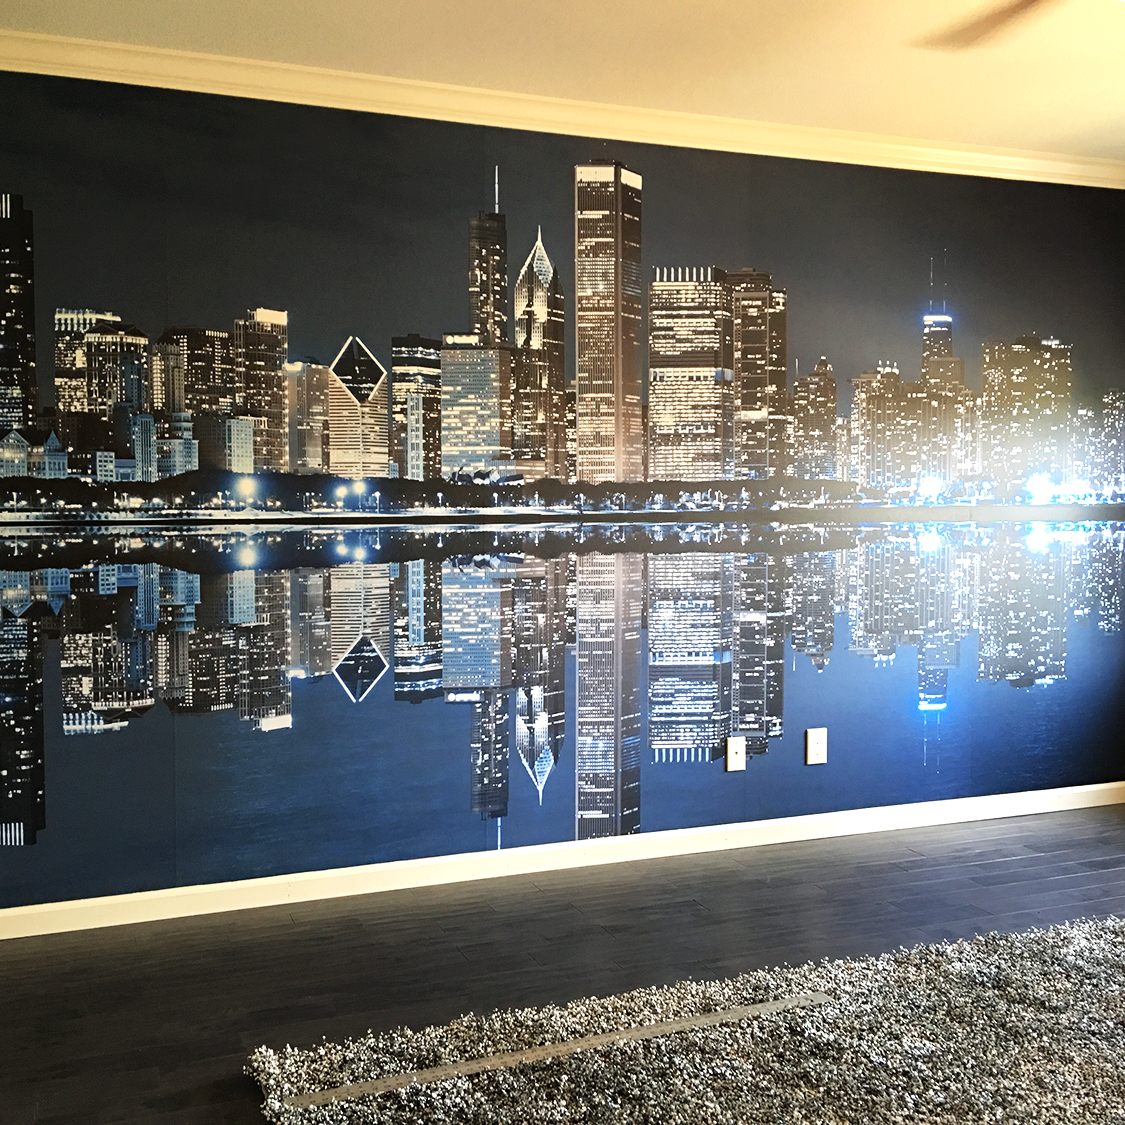 RESIDENTIAL - Residential products and services range from hand-stretched canvases and custom frames to fine art prints and photo reproductions. Our team of professionals works with you every step of the way as your idea becomes a reality.Pictured: Custom Printed and Installed Wall Cling Mural in the master bedroom of a private home